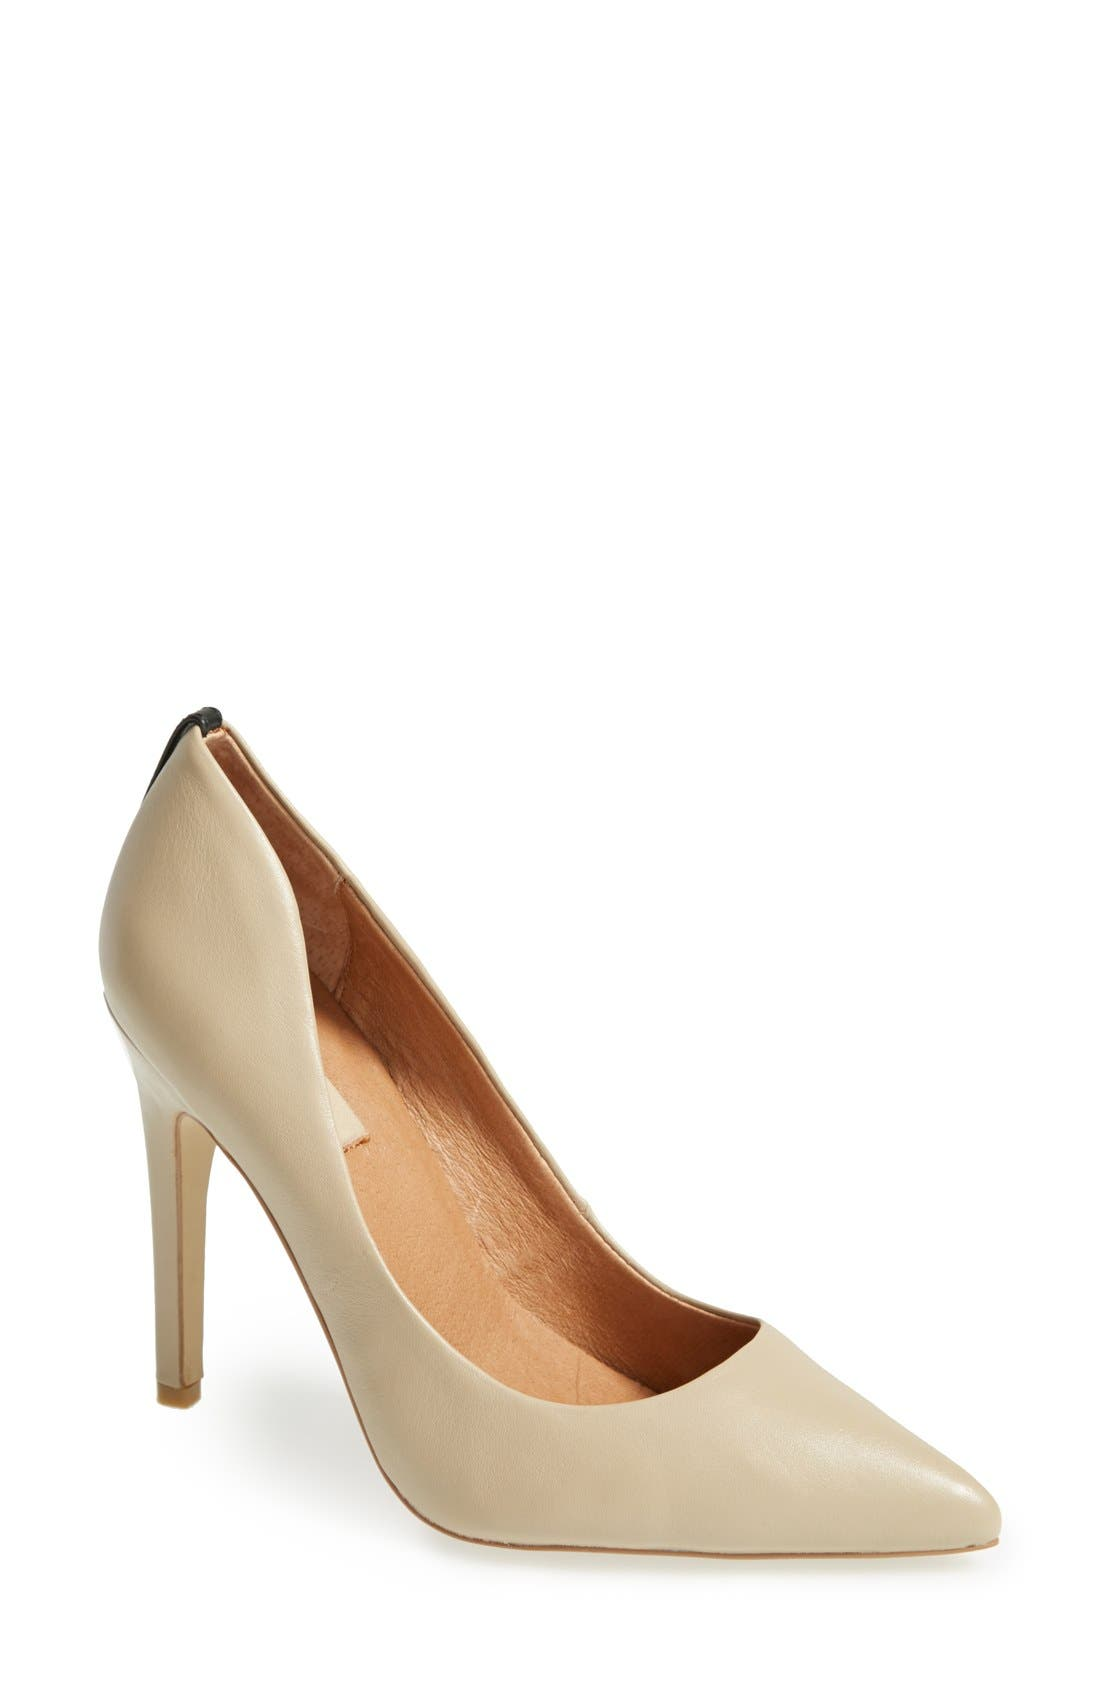 'Jolie' Pointy Toe Pump,                             Main thumbnail 1, color,                             Taupe